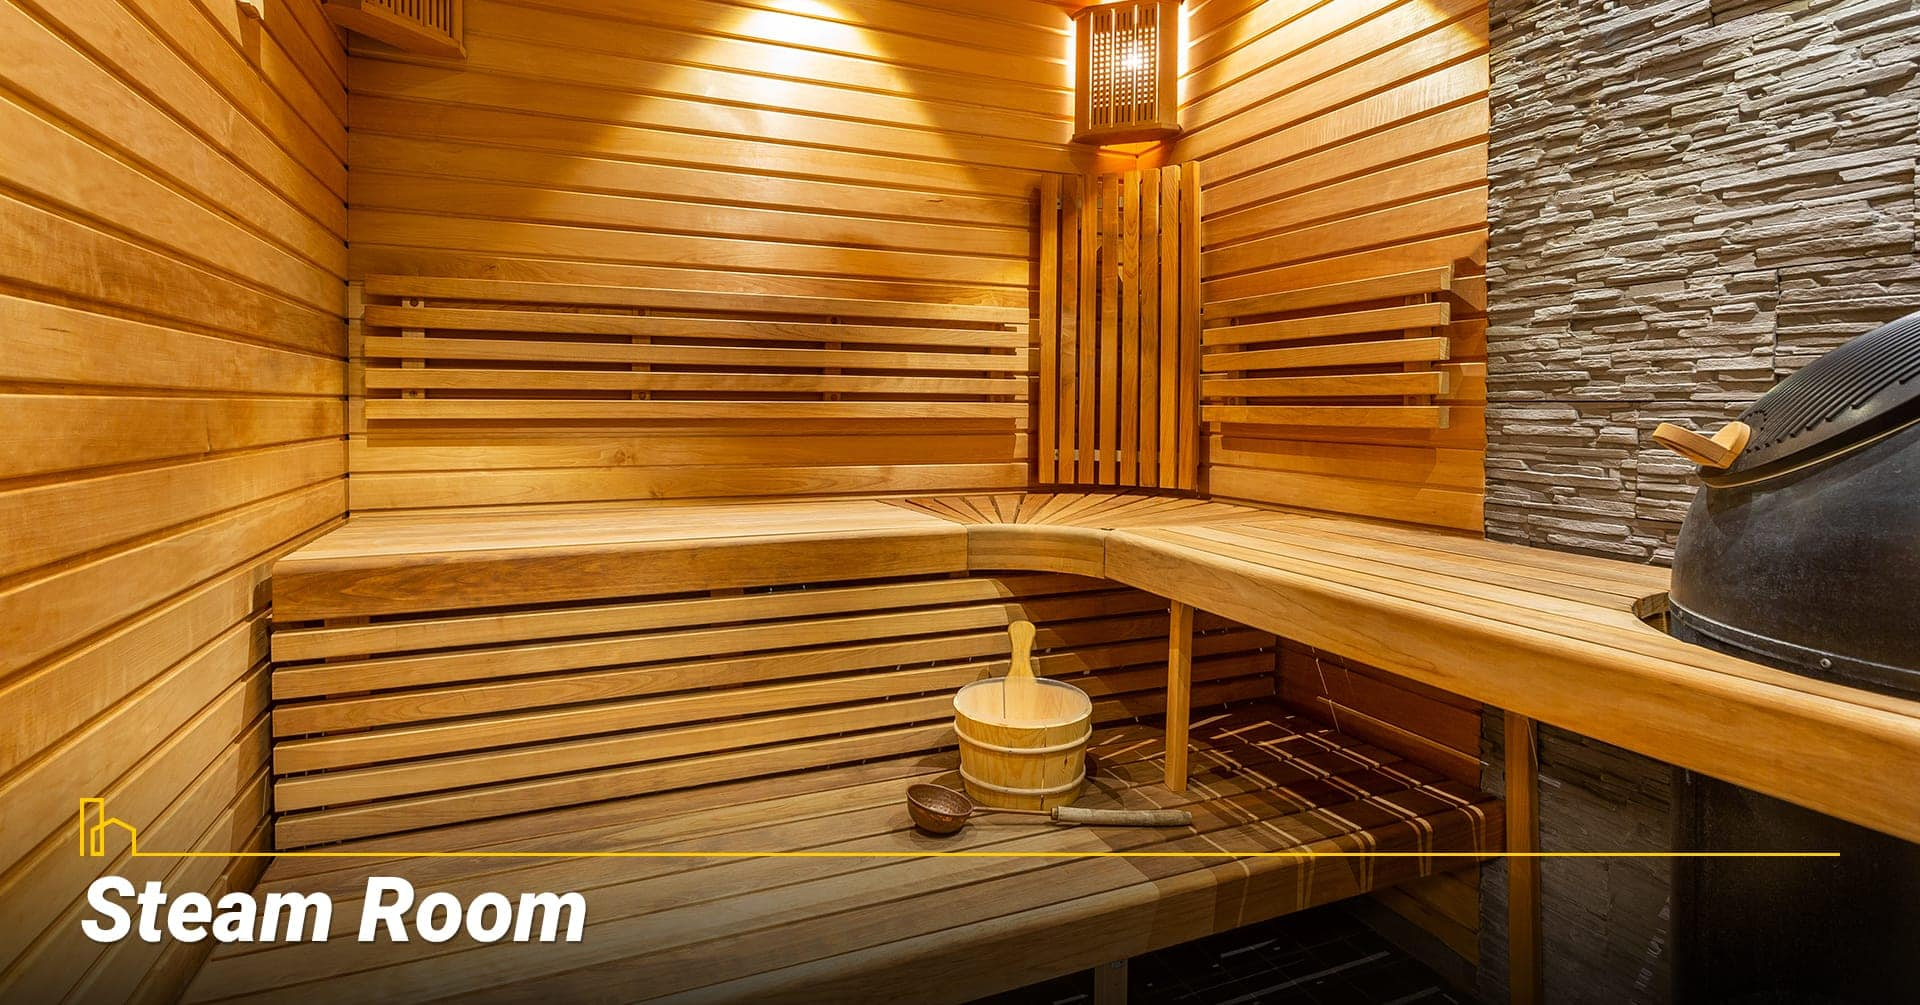 Steam Room, room for relaxation